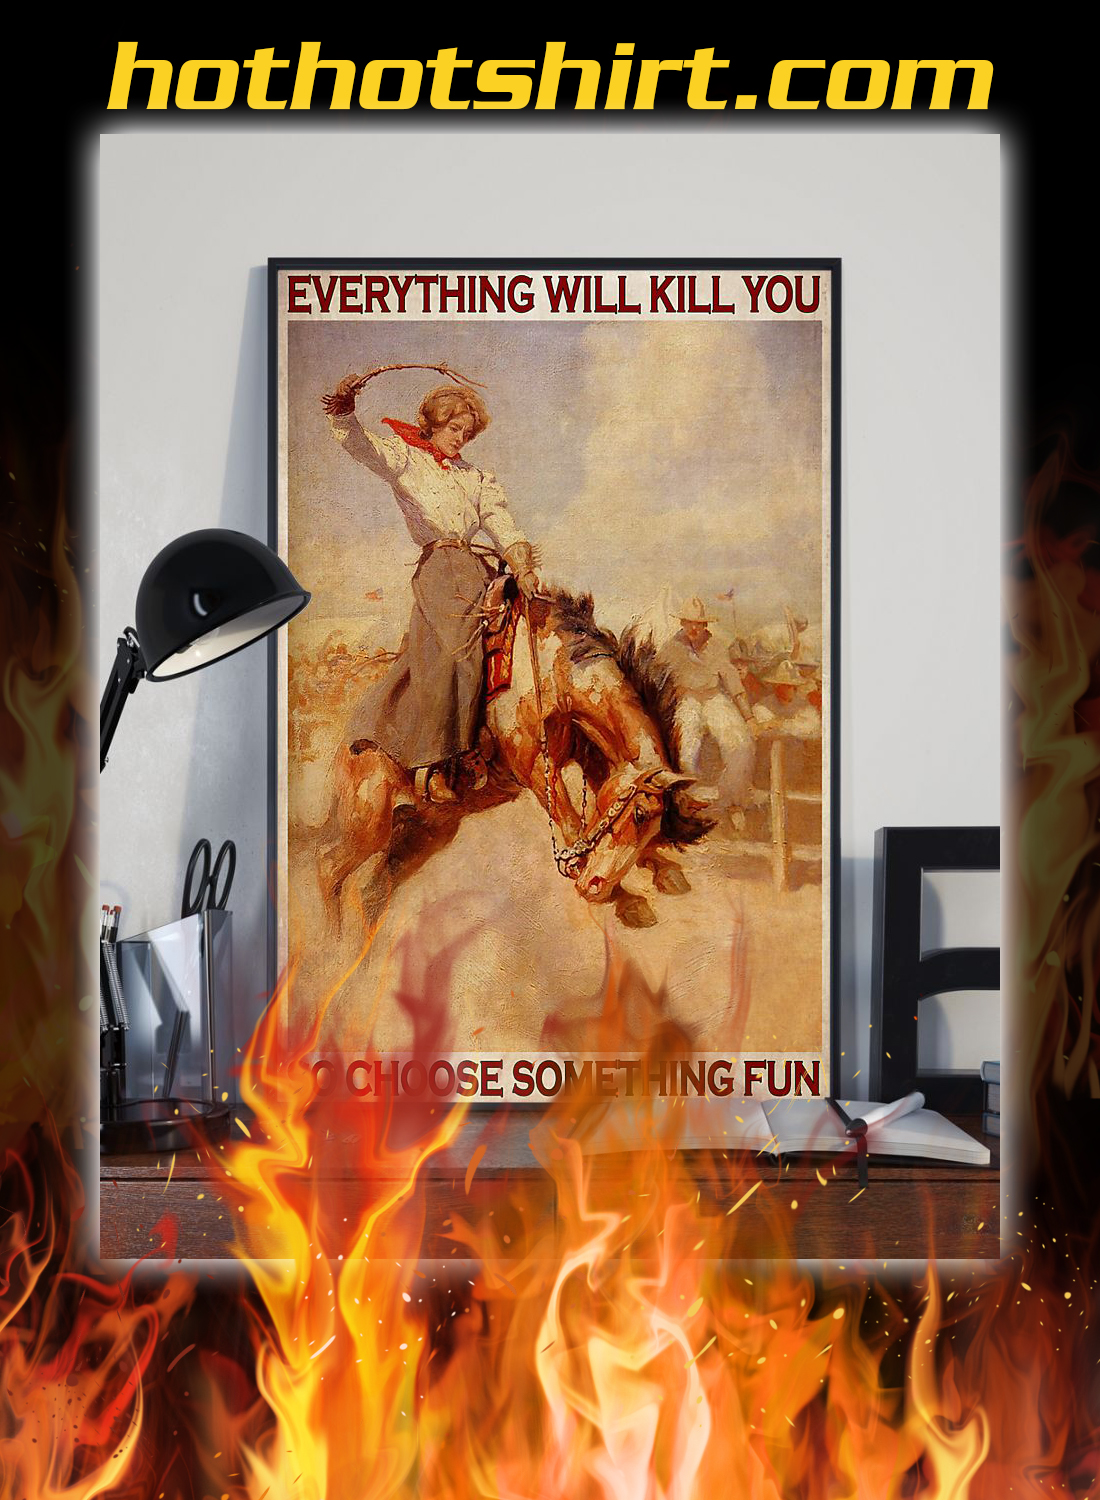 Rodeo girl everything will kill you so choose something fun poster 1